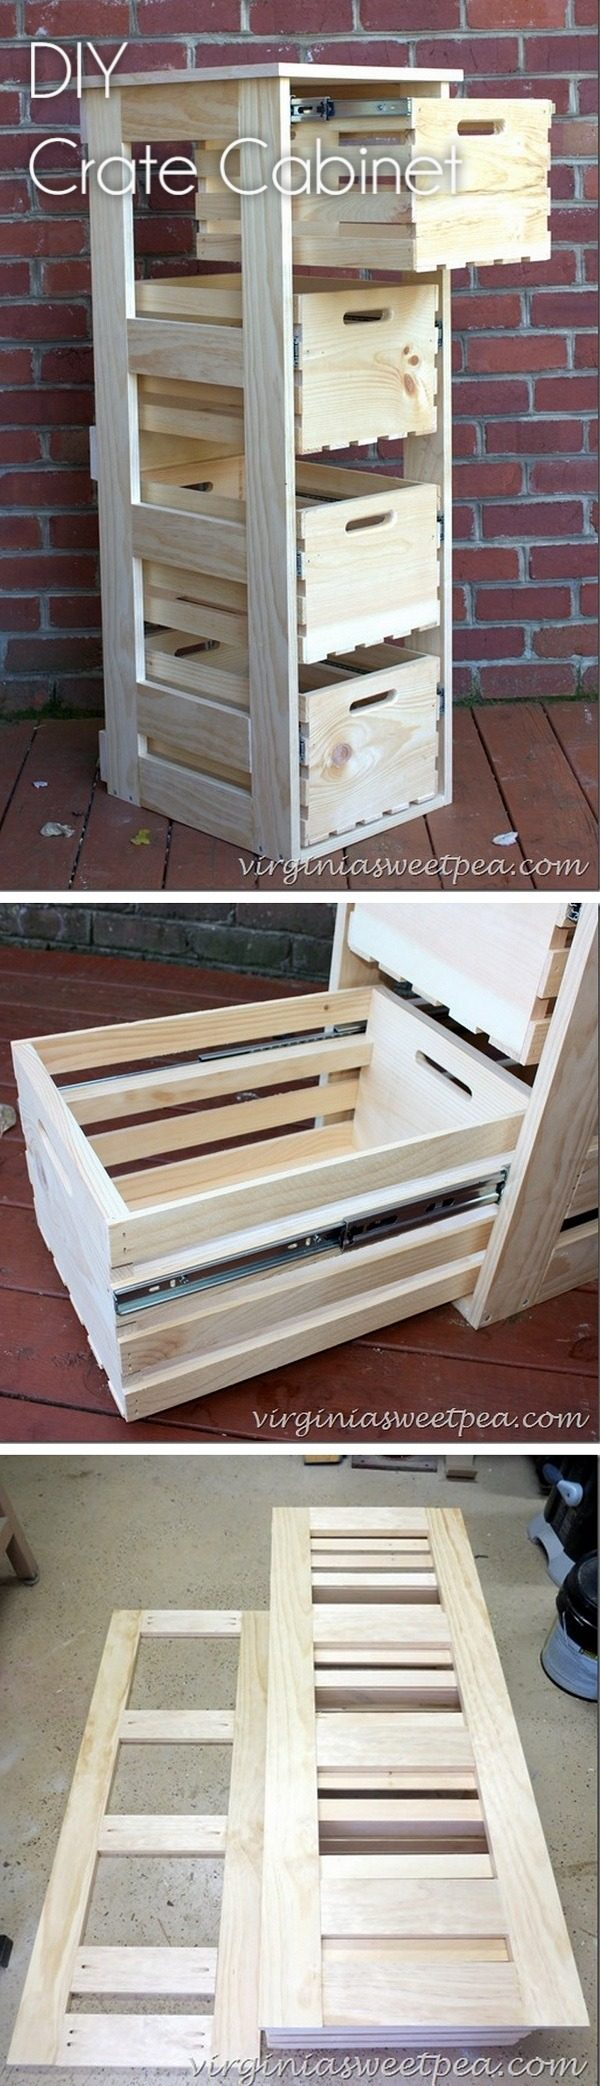 Check out how to build an easy #DIY crate cabinet with sliding drawers #rustic #HomeDecorIdeas